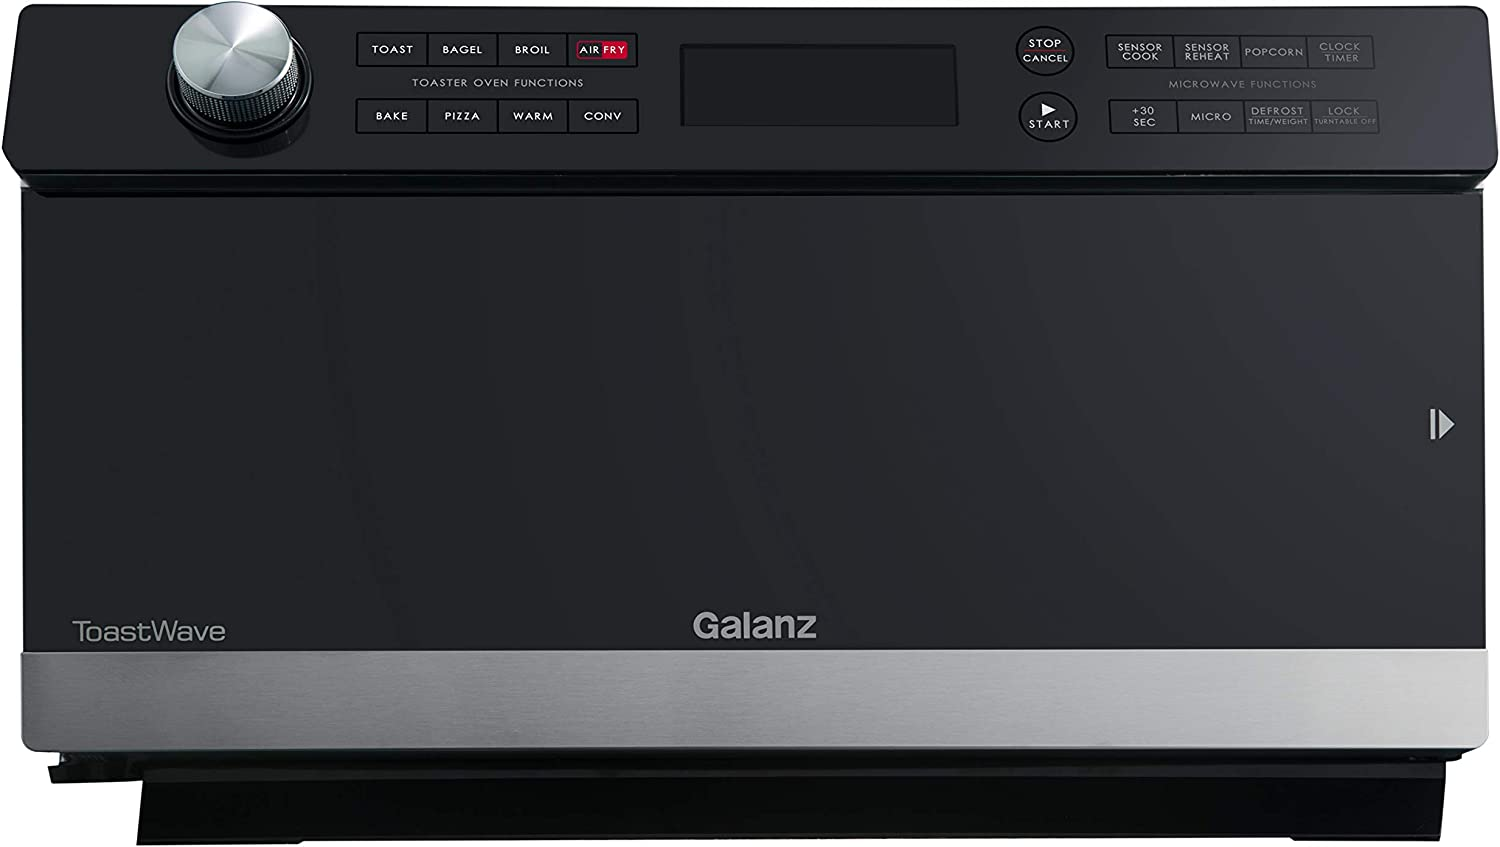 Galanz Americas GTWHG12S1SA10 ToastWave 4-in-1 Multifunctional Oven, Stainless Steel